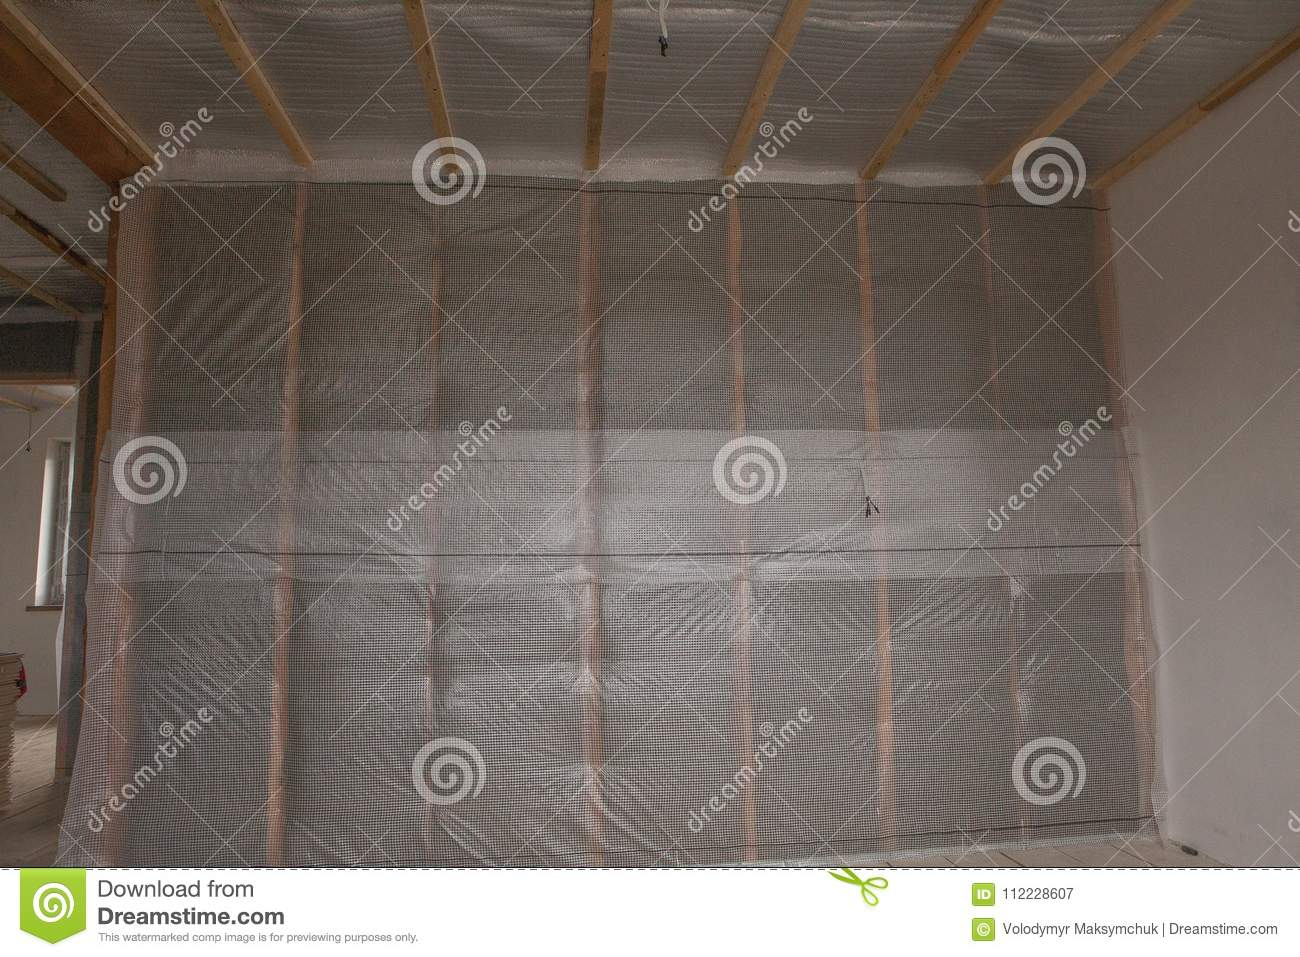 Thermal and hidro insulation wall insulation construction new residential home